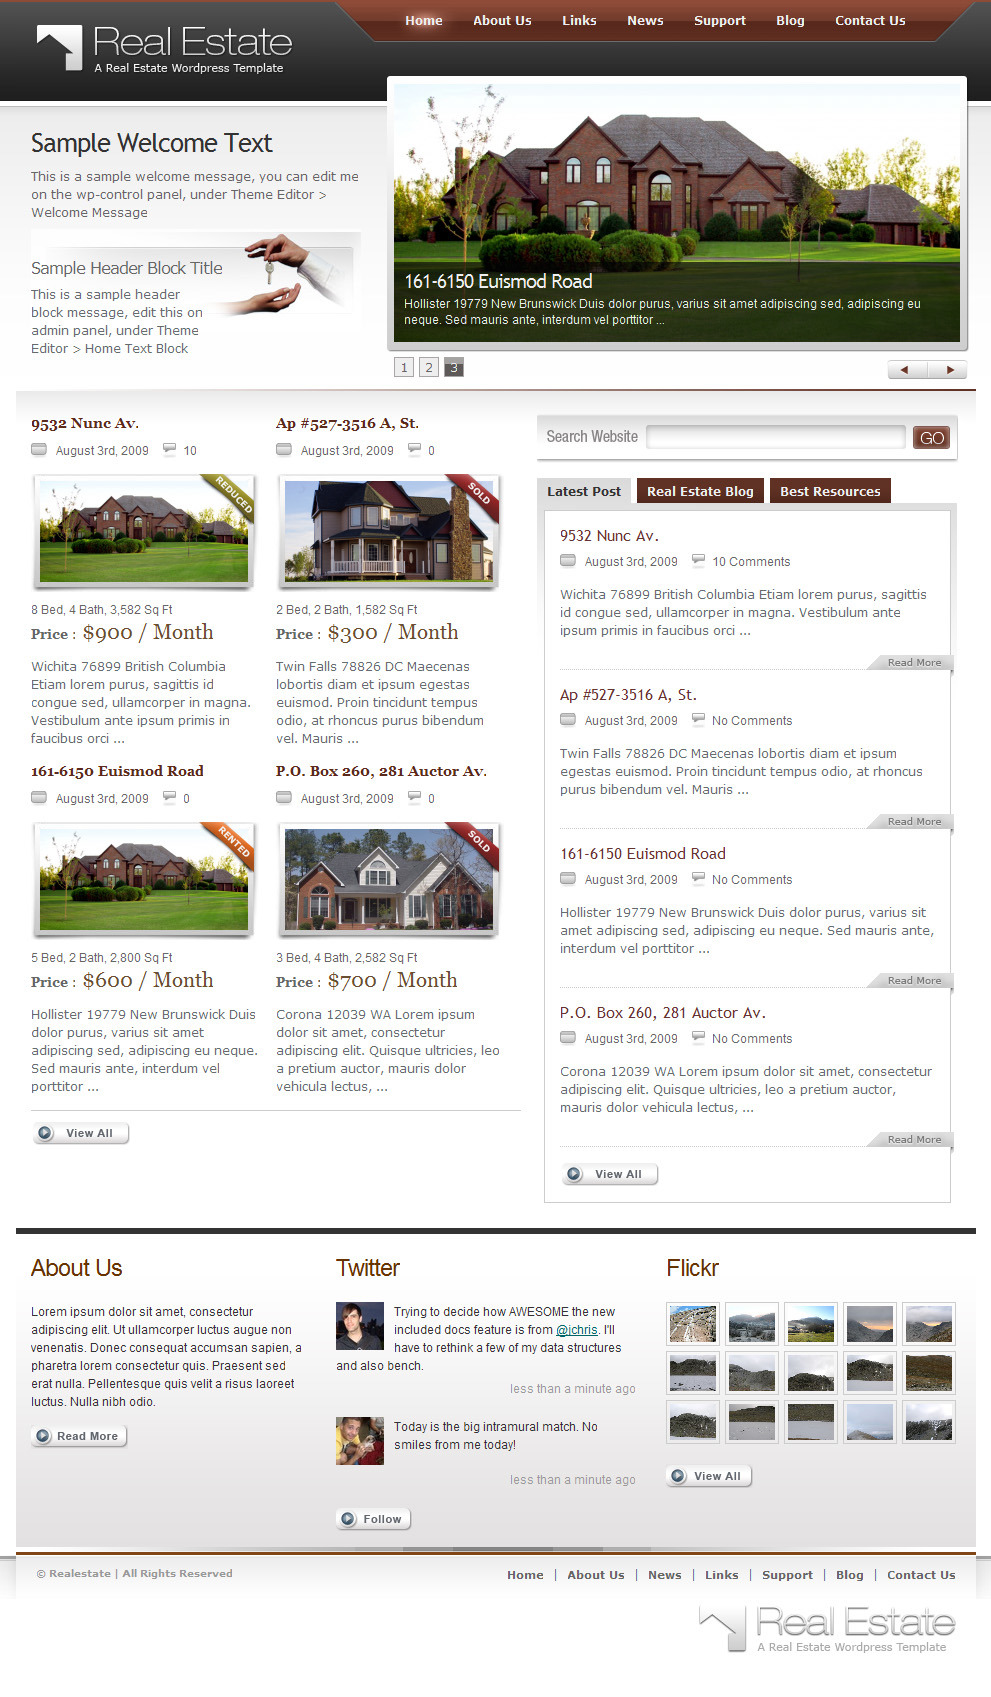 Real Estate Theme by themeforest.net